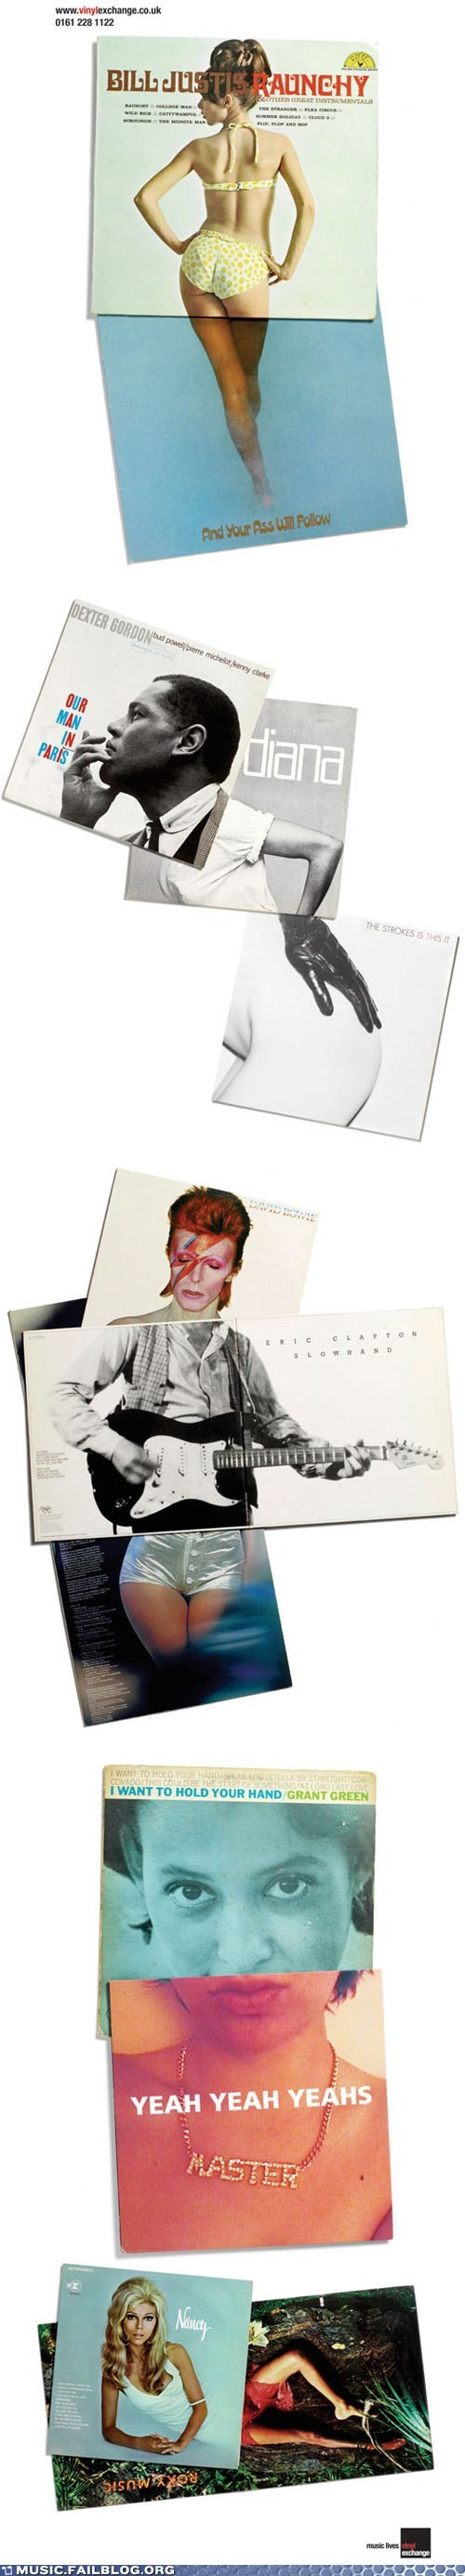 Vinyl Album Covers Remixed